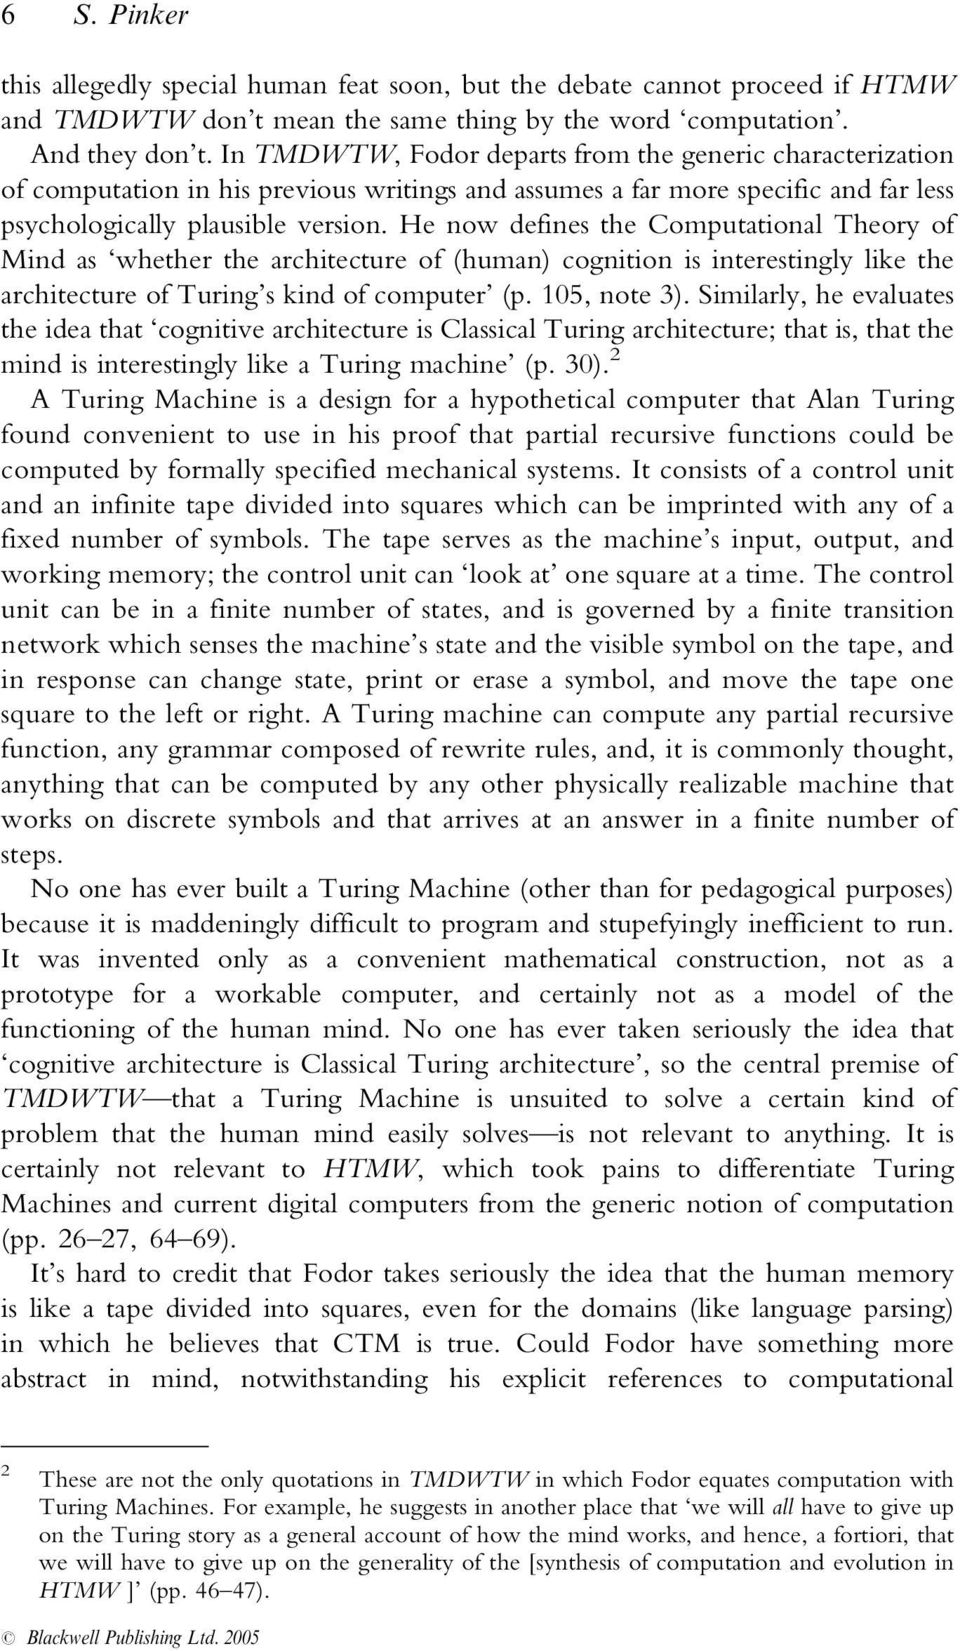 He now defines the Computational Theory of Mind as whether the architecture of (human) cognition is interestingly like the architecture of Turing s kind of computer (p. 105, note 3).